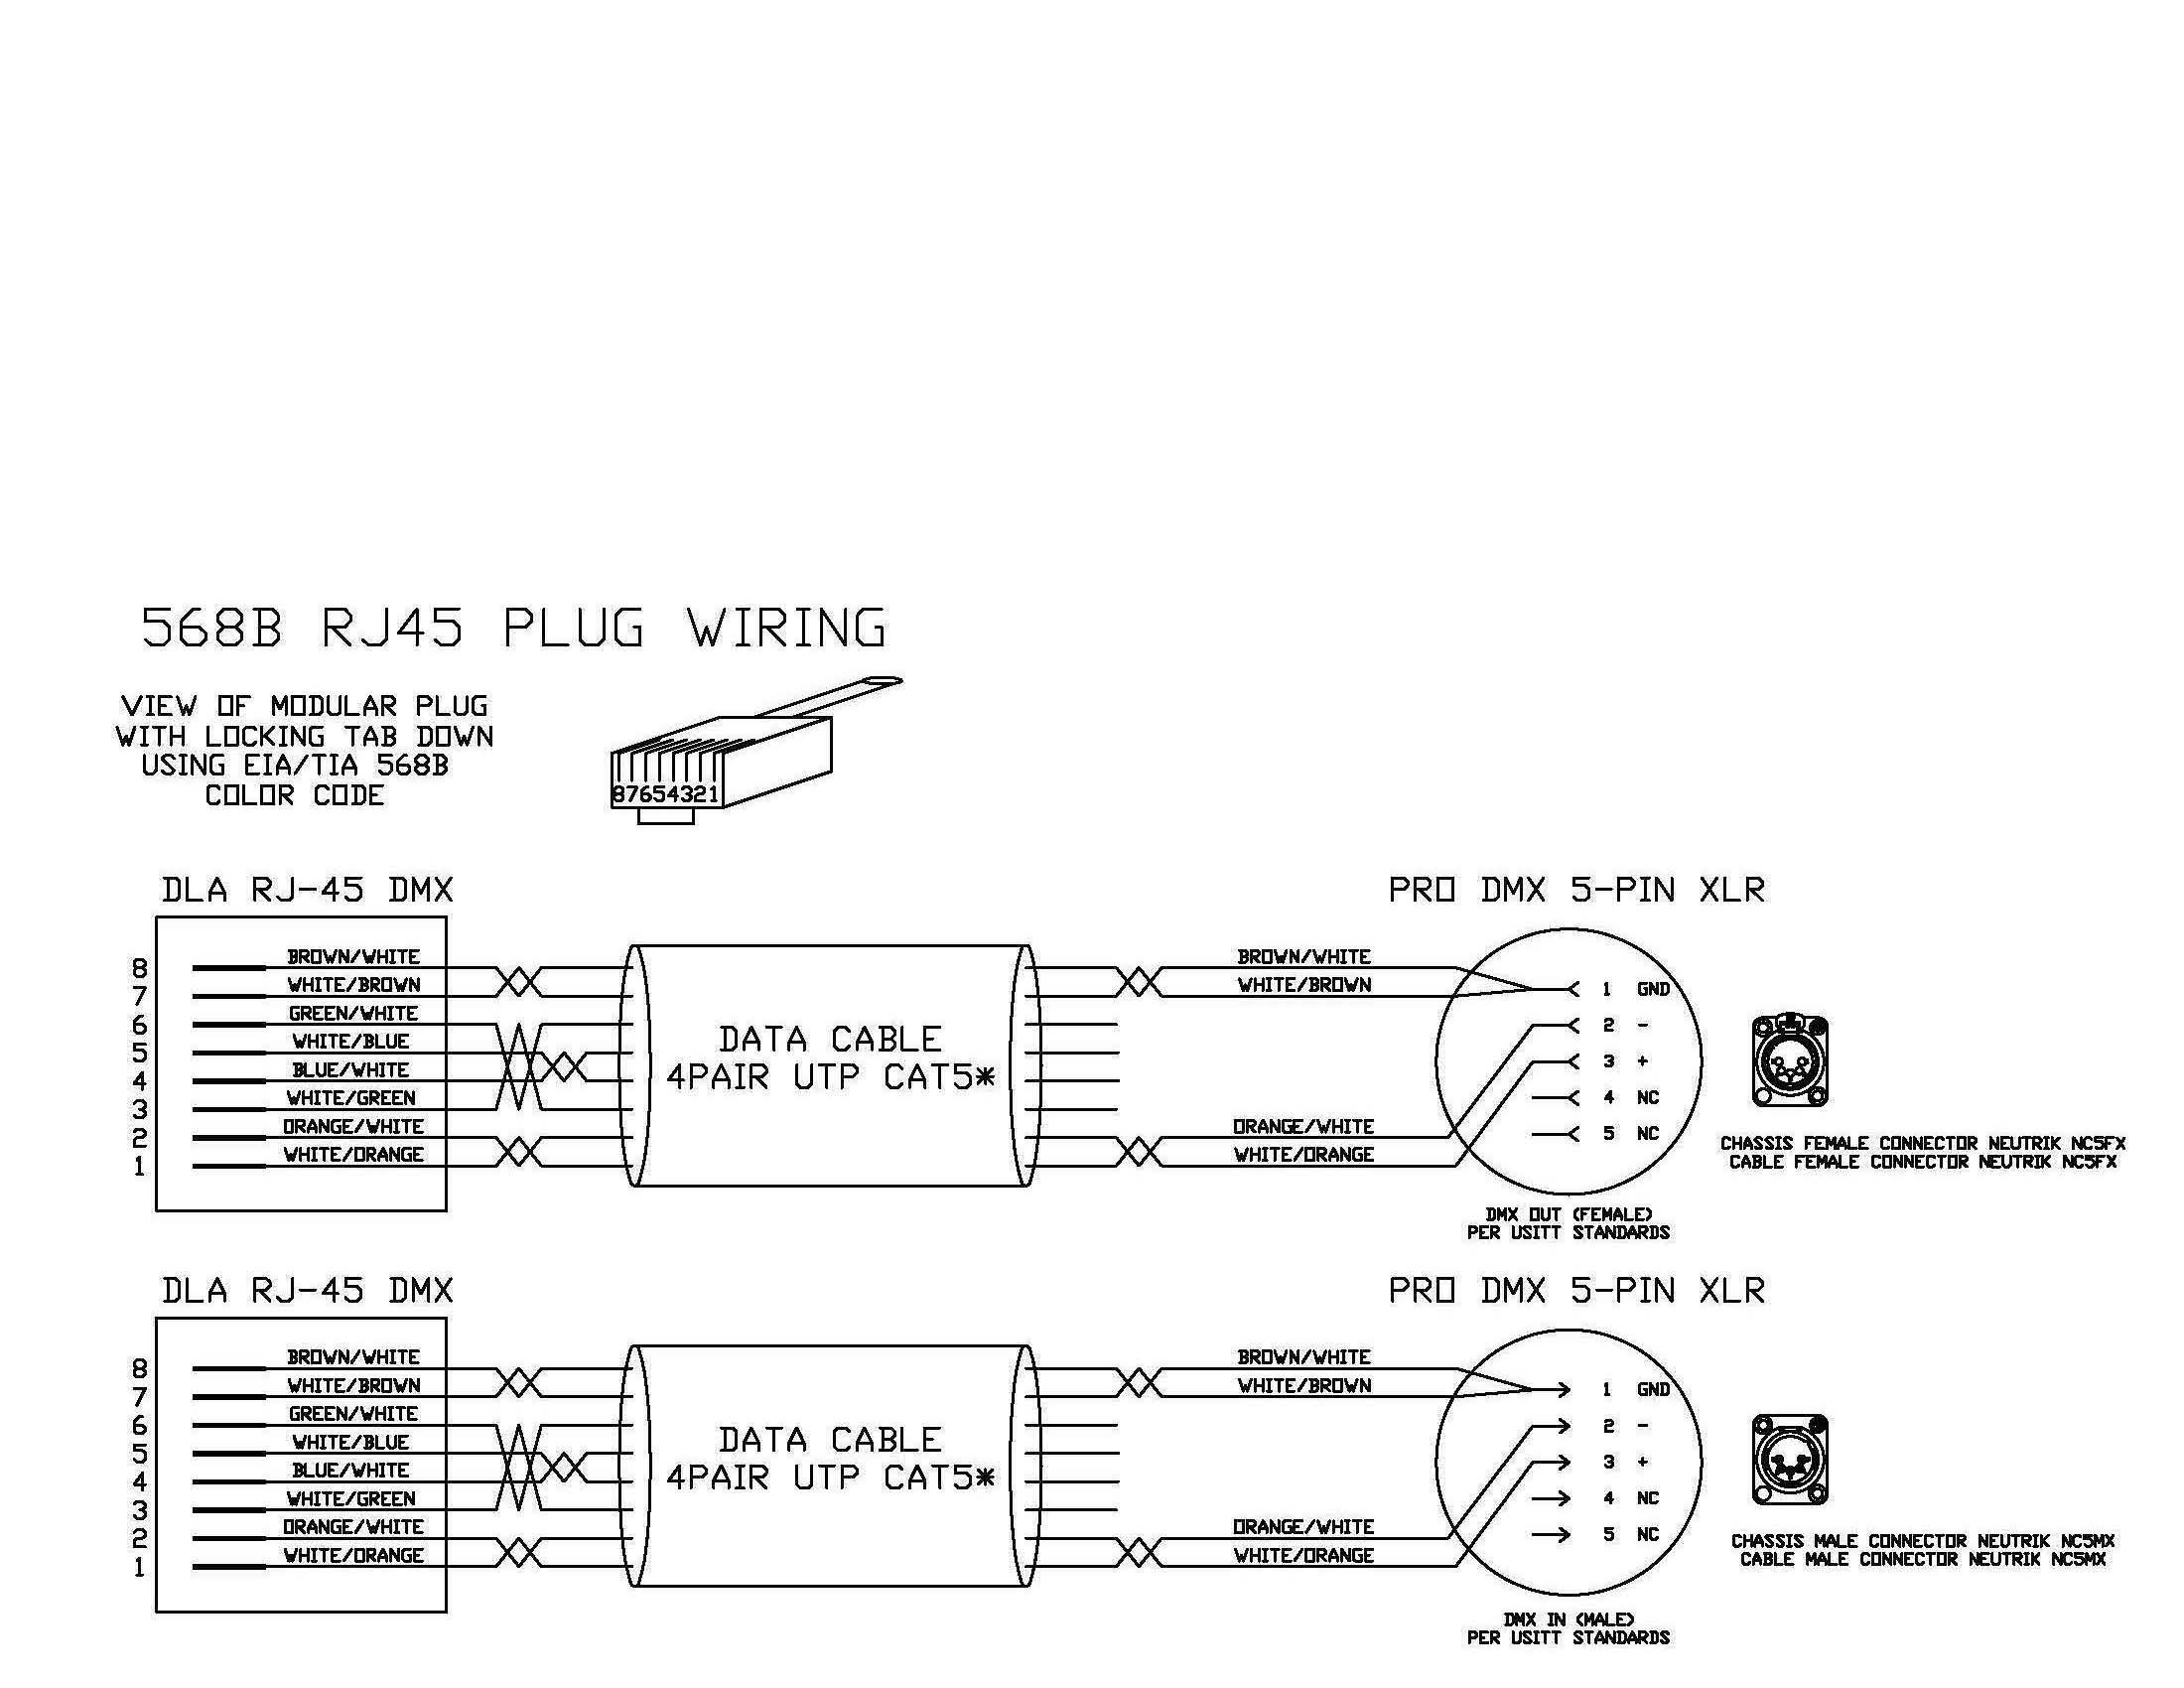 microphone jack wiring diagram microphone discover your wiring xlr to rj45 diagram microphone jack wiring